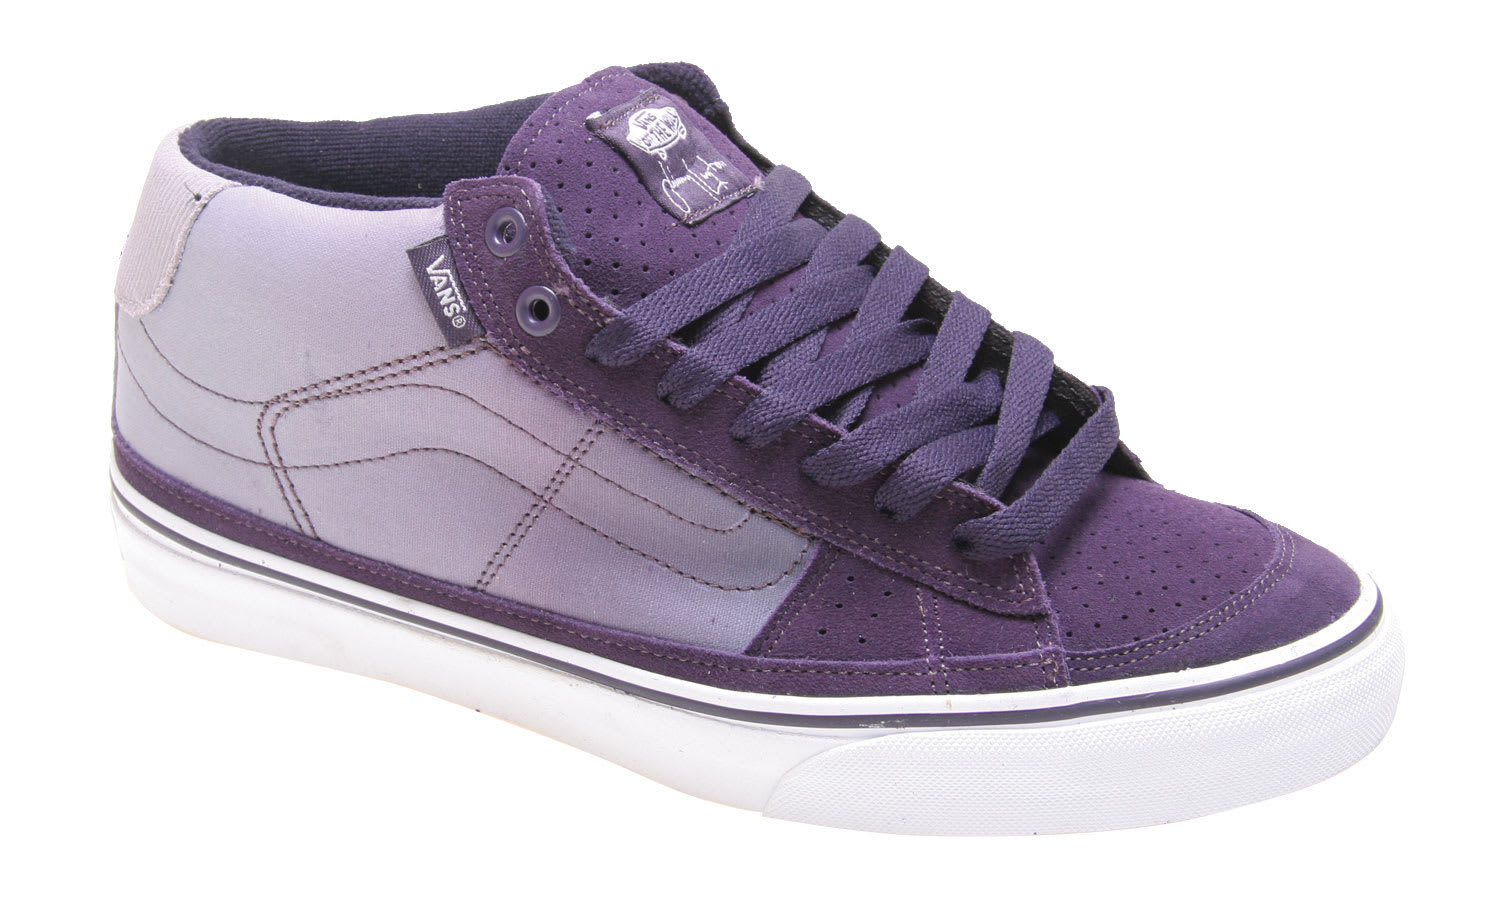 99d967923f Vans J Lay Mid Skate Shoes - thumbnail 1